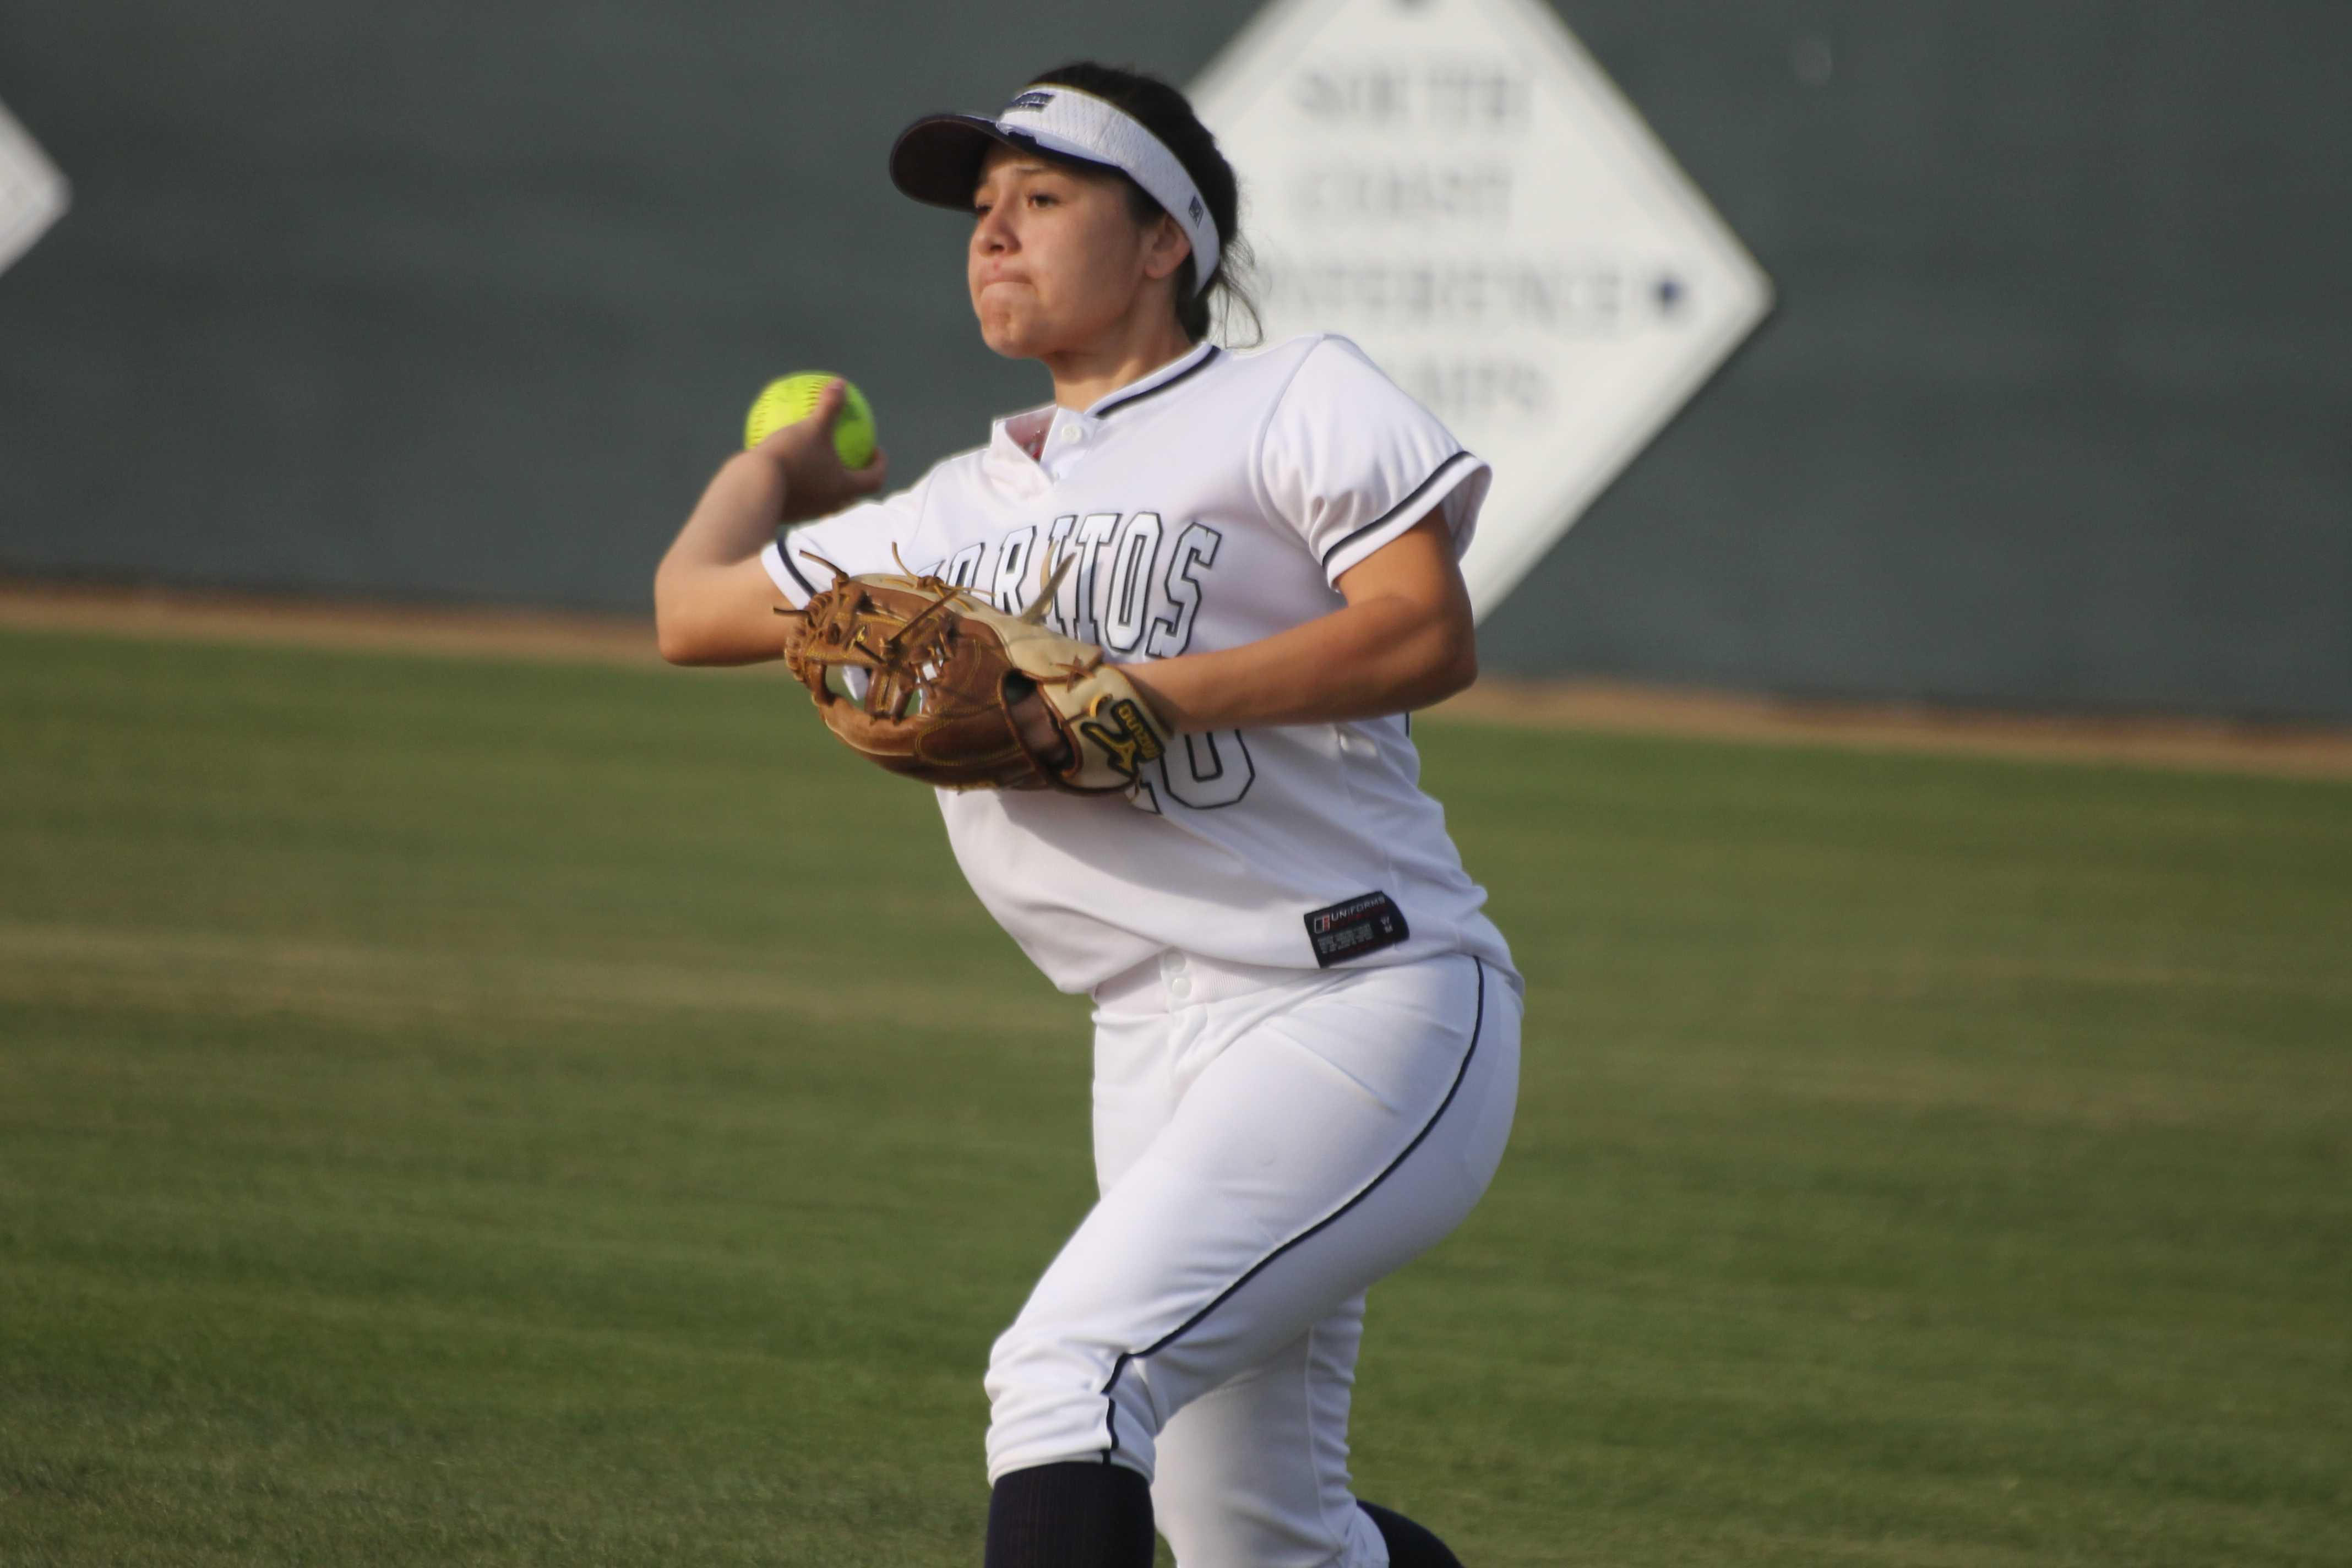 Second baseman Monique Ramirez attempts to get the out during the February 20 game against College of the Canyons. The Falcons ended their season with a 26-19 record. Photo credit: Monica Gallardo